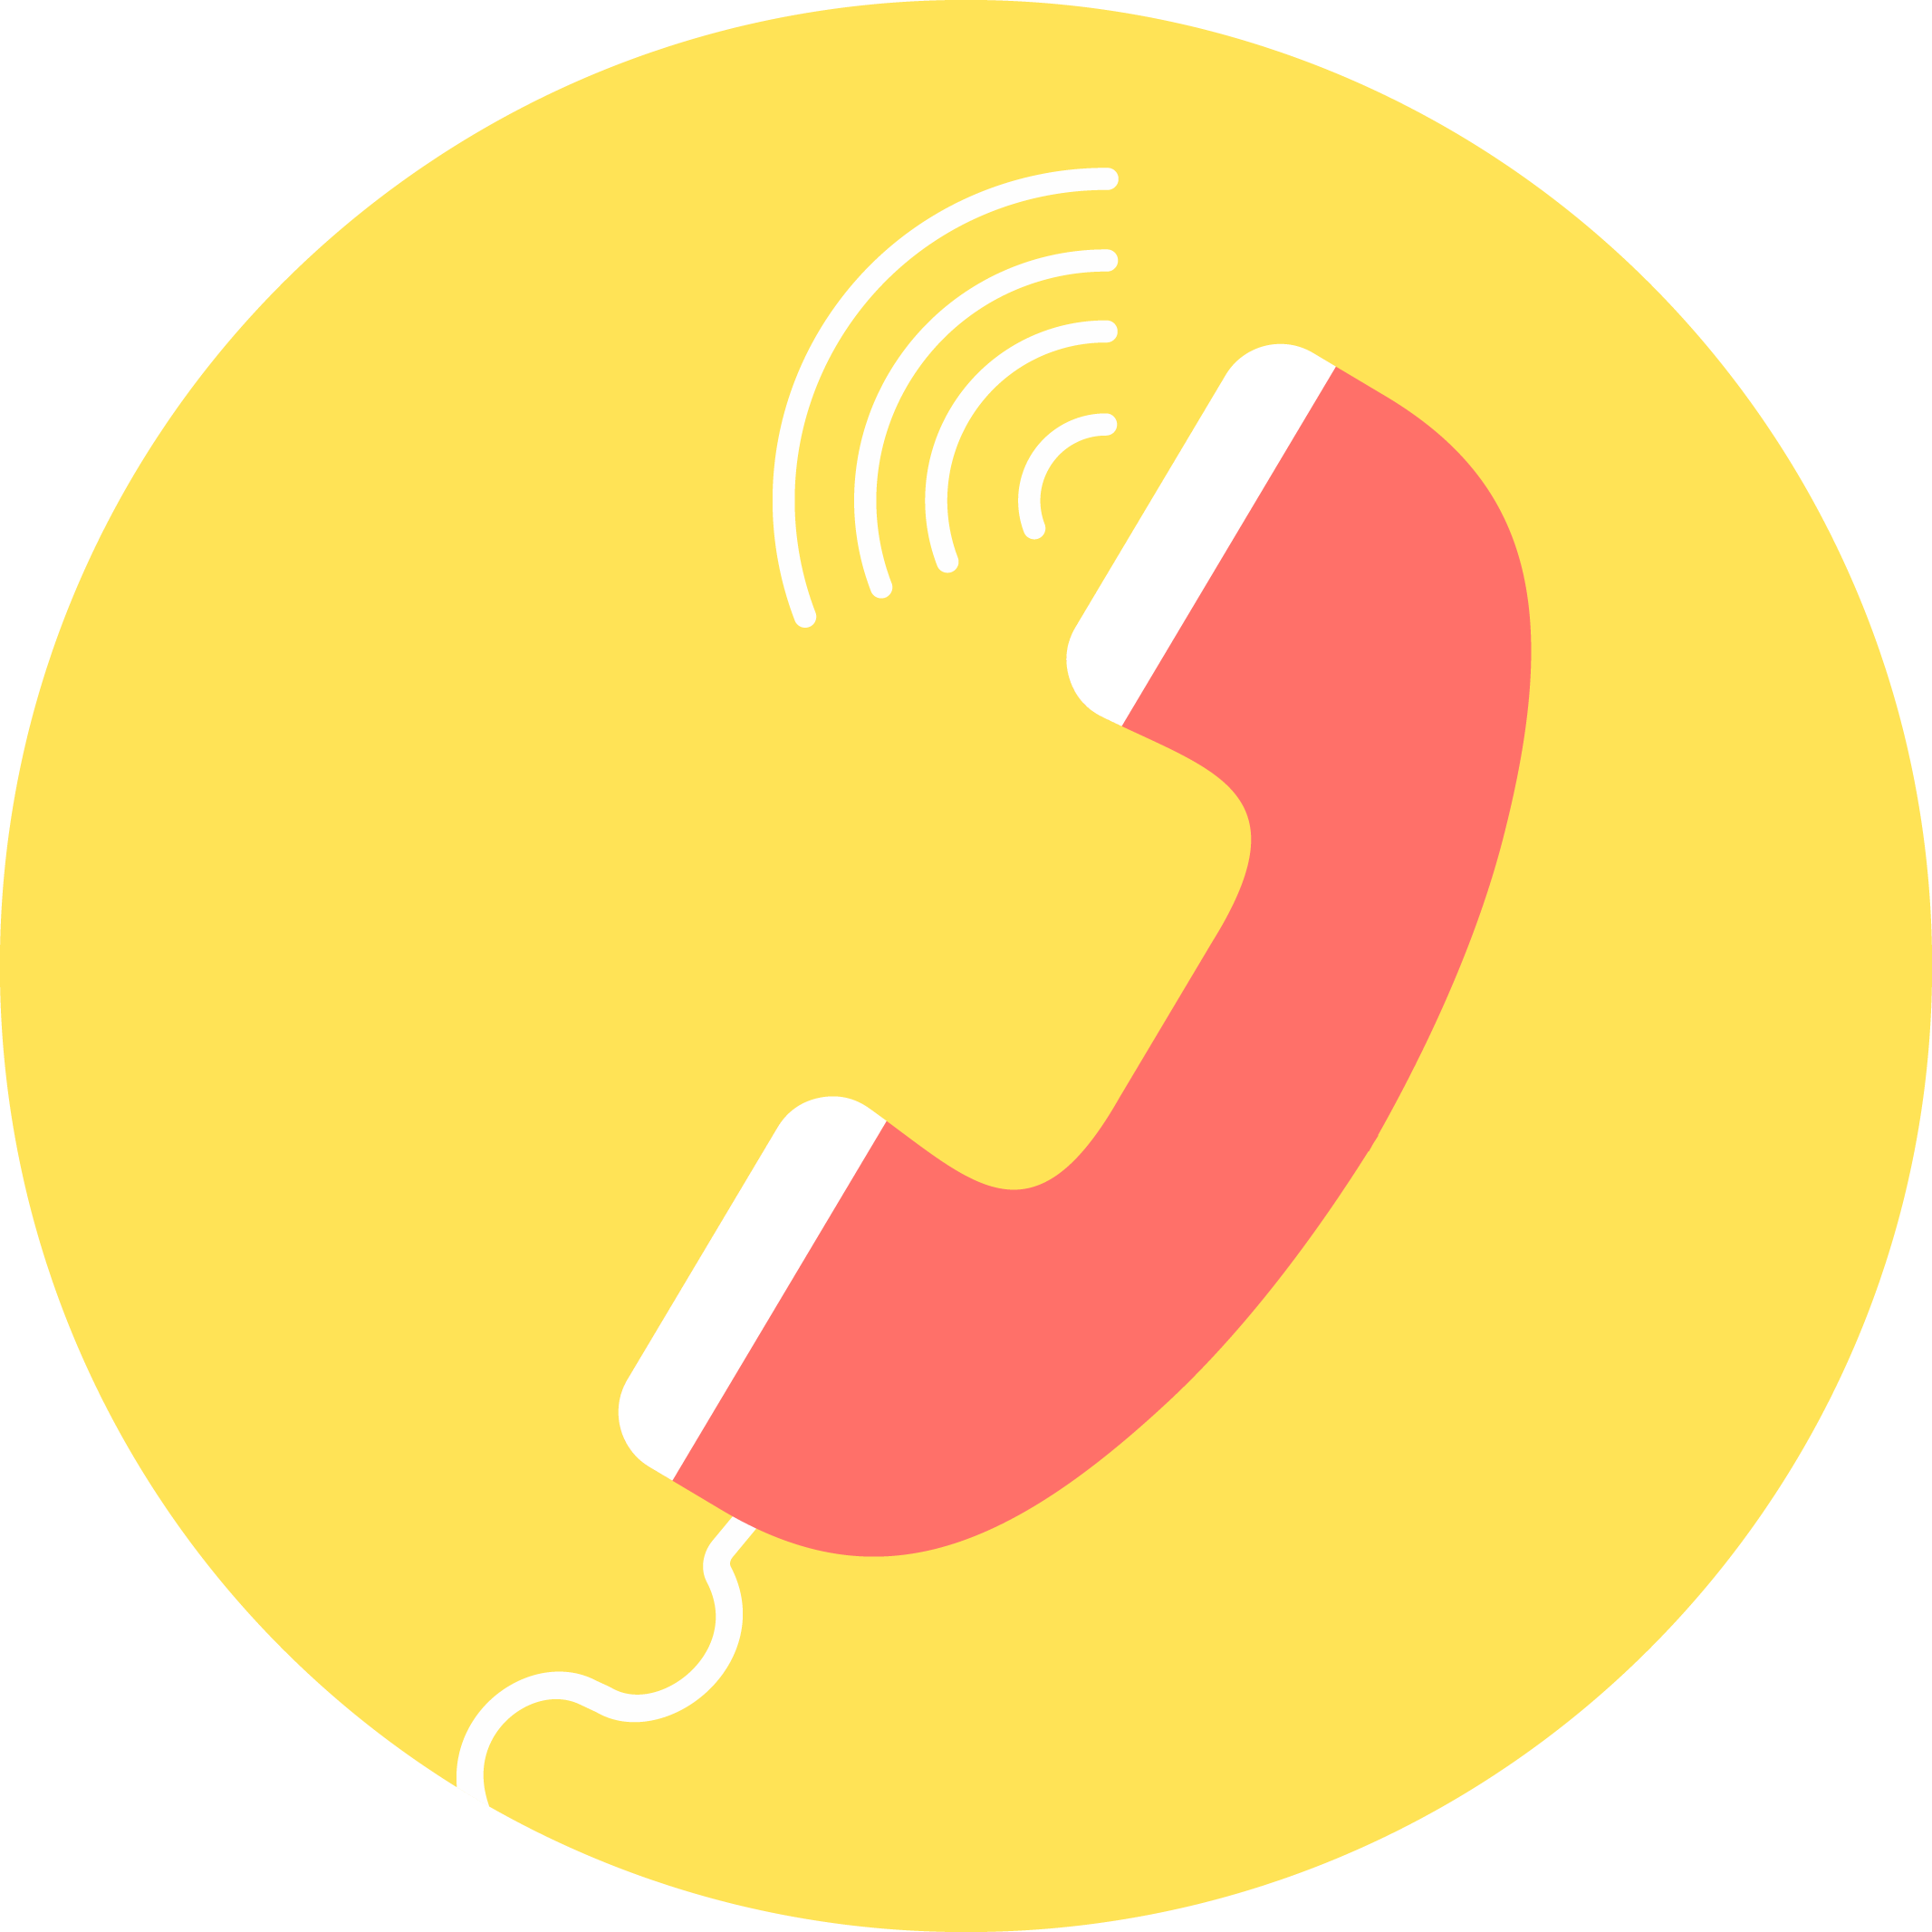 Call.png